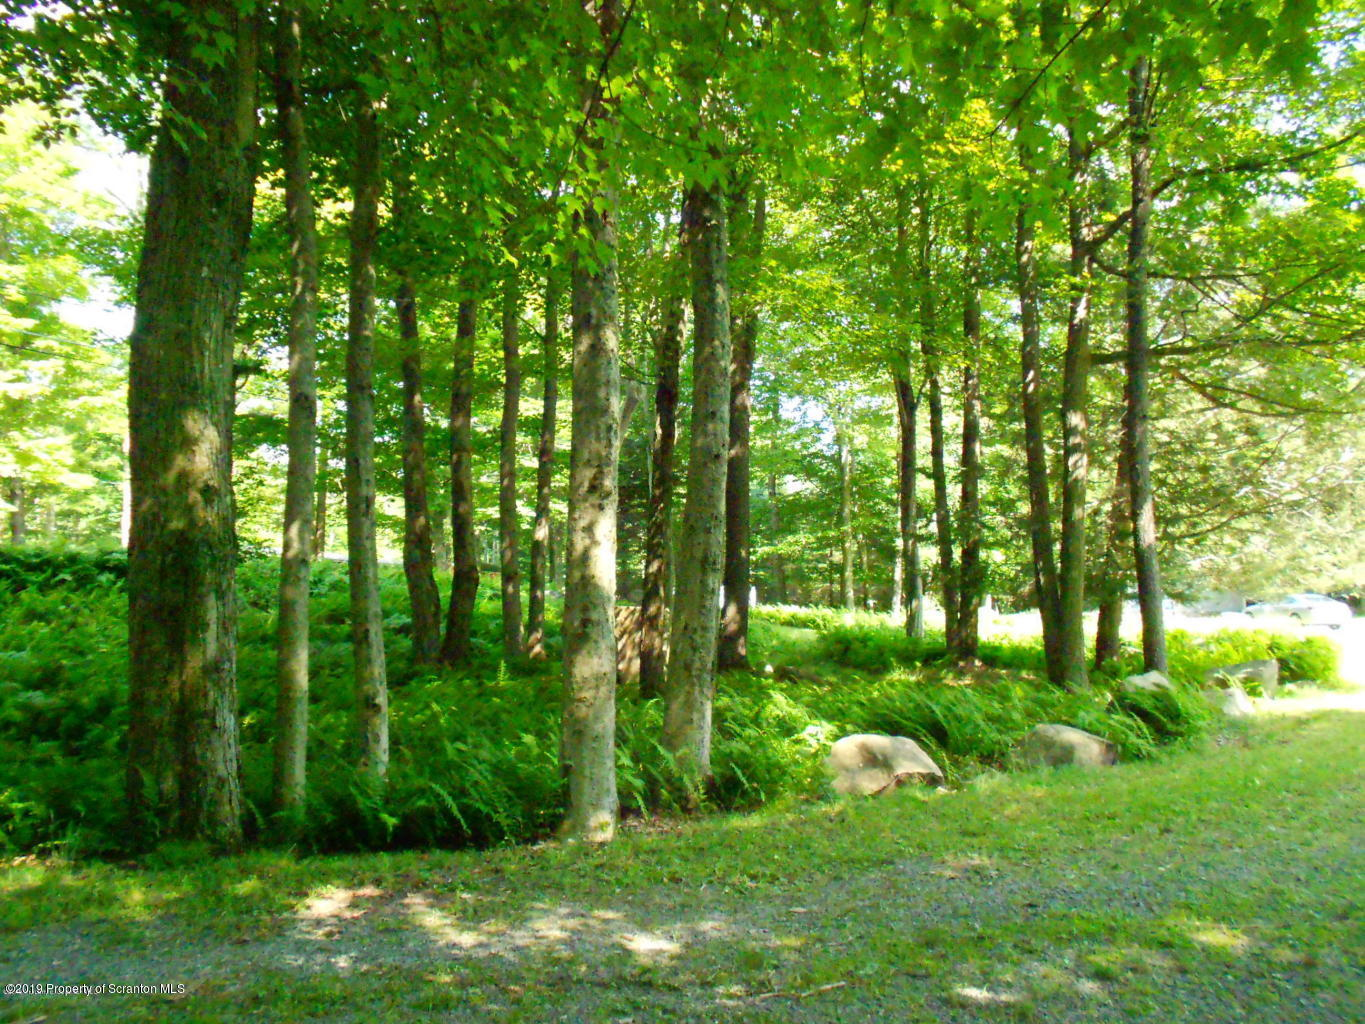 30/36 Iroquois Path, Gouldsboro, Pennsylvania 18424, ,Land,For Sale,Iroquois,19-4986